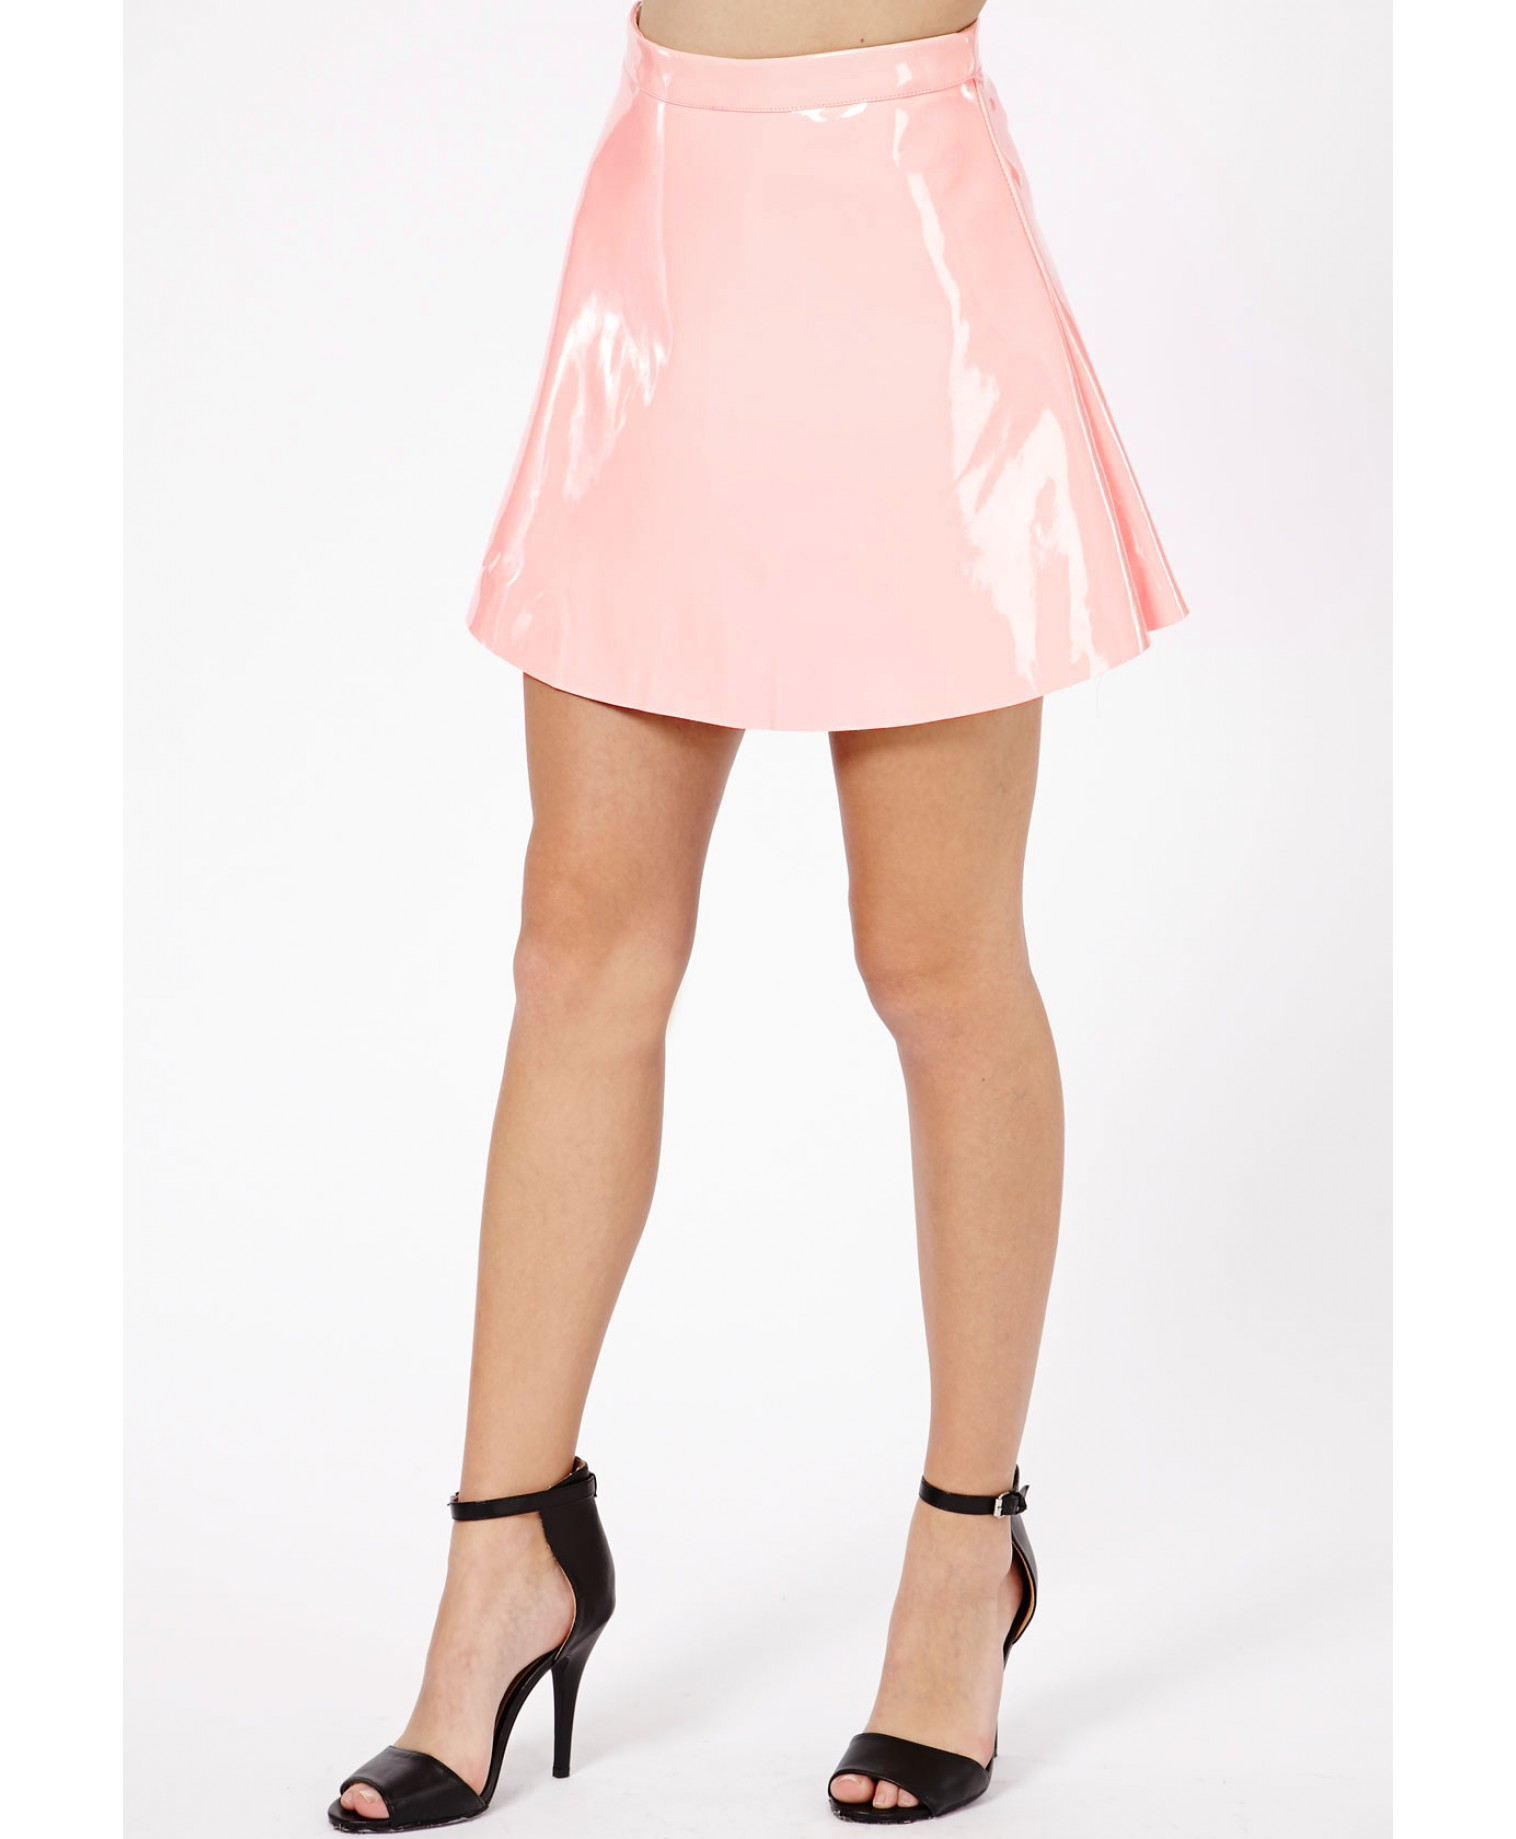 You searched for: pink skater skirt! Etsy is the home to thousands of handmade, vintage, and one-of-a-kind products and gifts related to your search. No matter what you're looking for or where you are in the world, our global marketplace of sellers can help you find unique and affordable options. Let's get started!